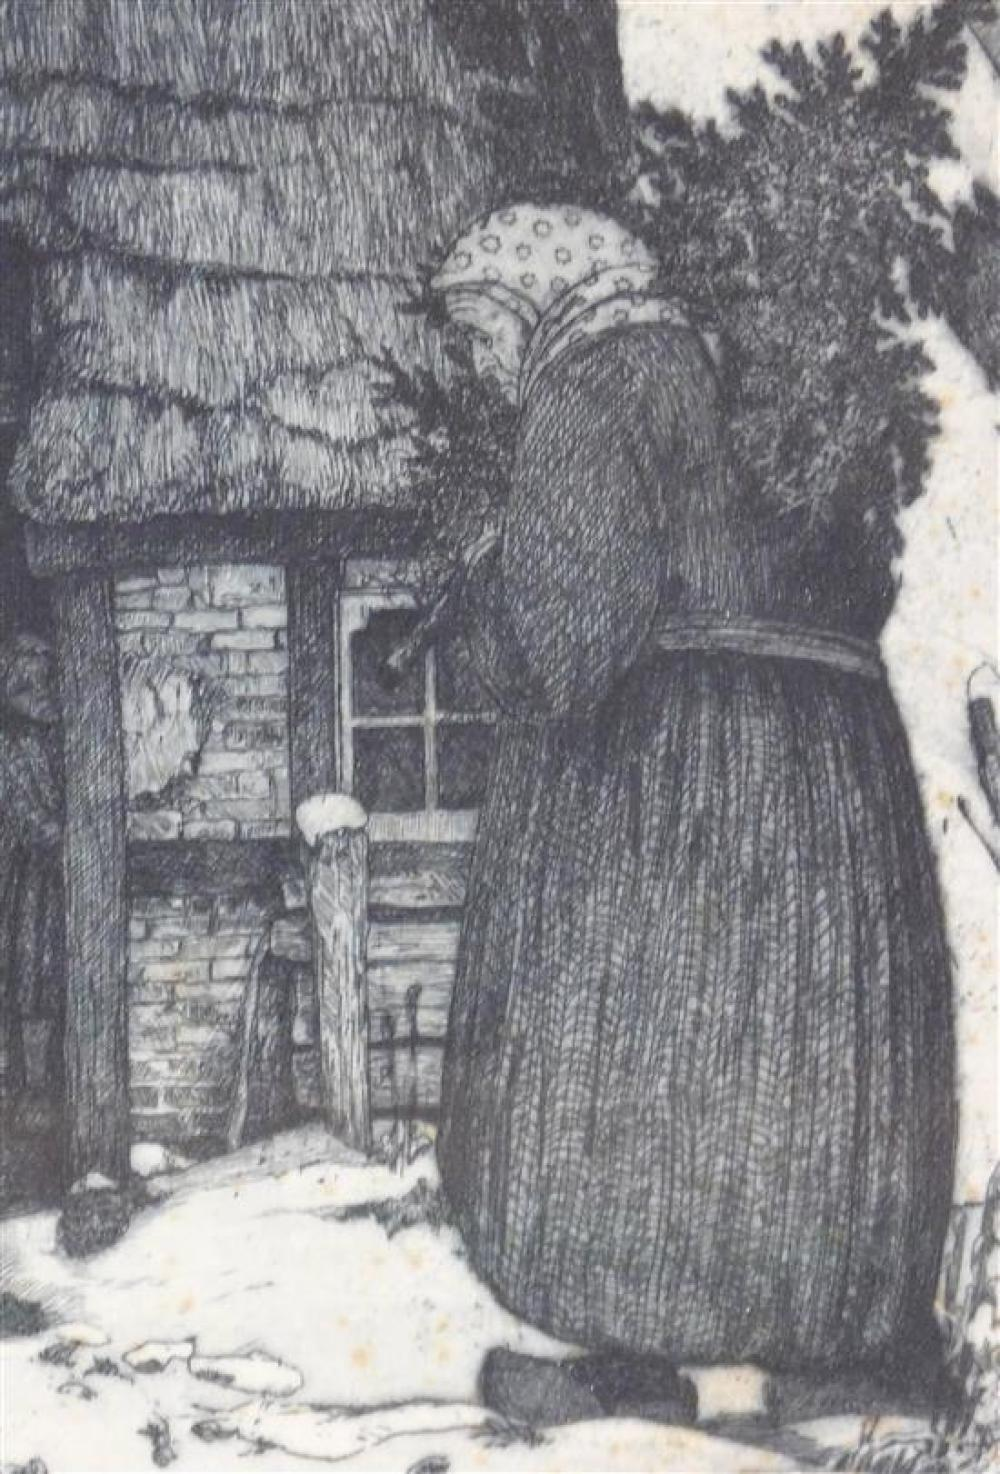 """Heinrich Vogeler (Germany, 1872-1942), """"Weihnachten"""", aquatint, 1912, ed. 30, an older woman approaches a thatch-roofed cottage with..."""